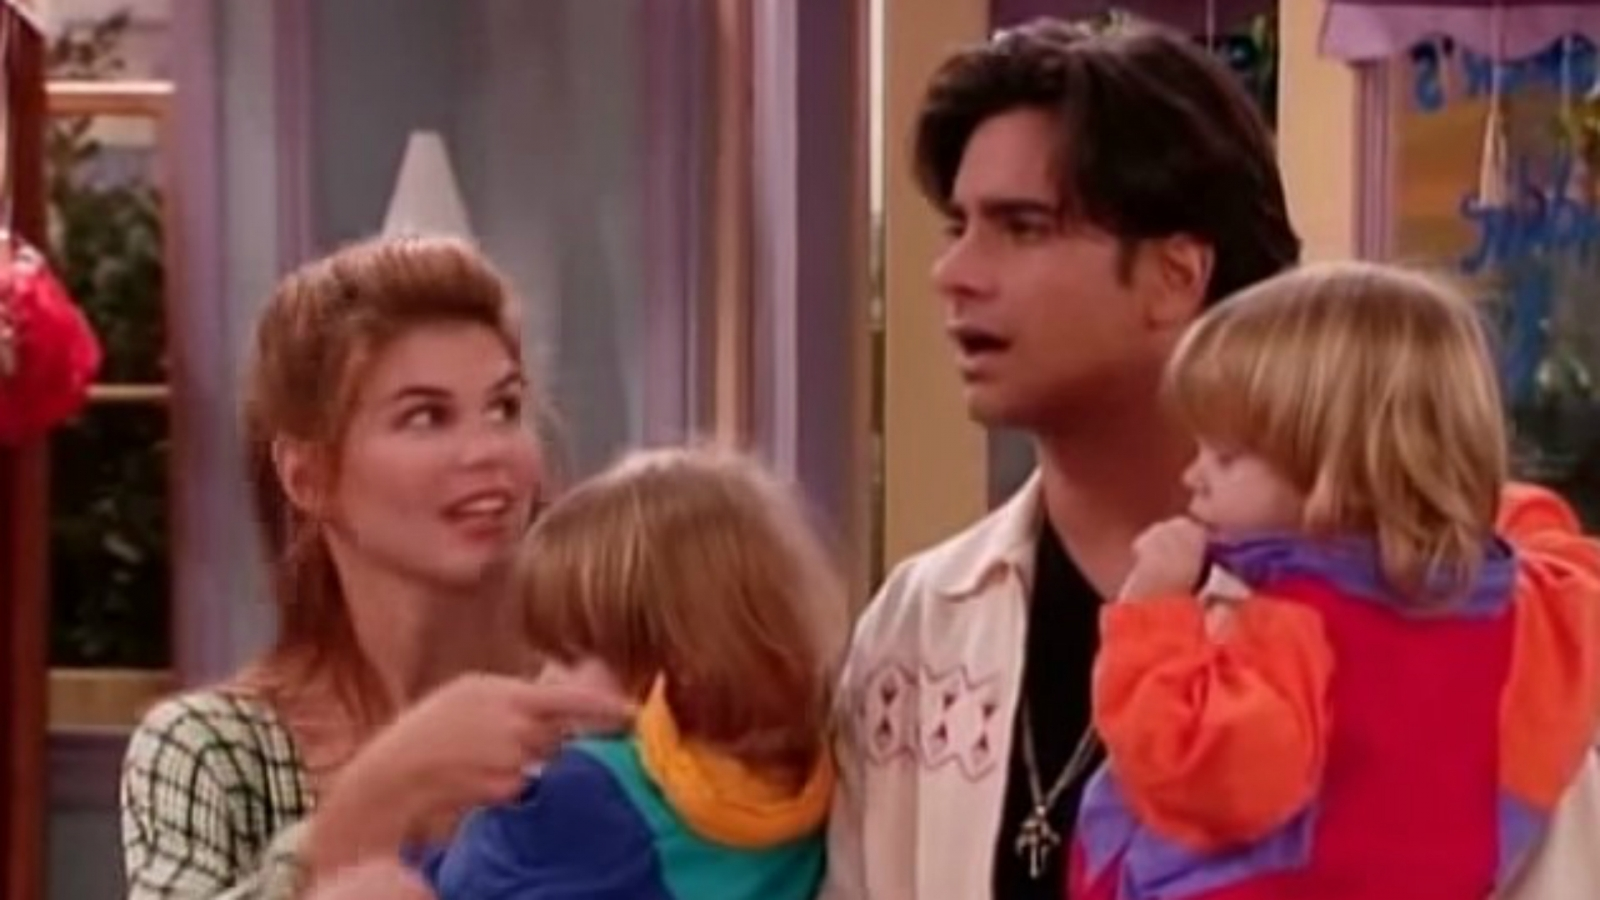 Full house spin off confirmed for netflix john stamos to for Fully house